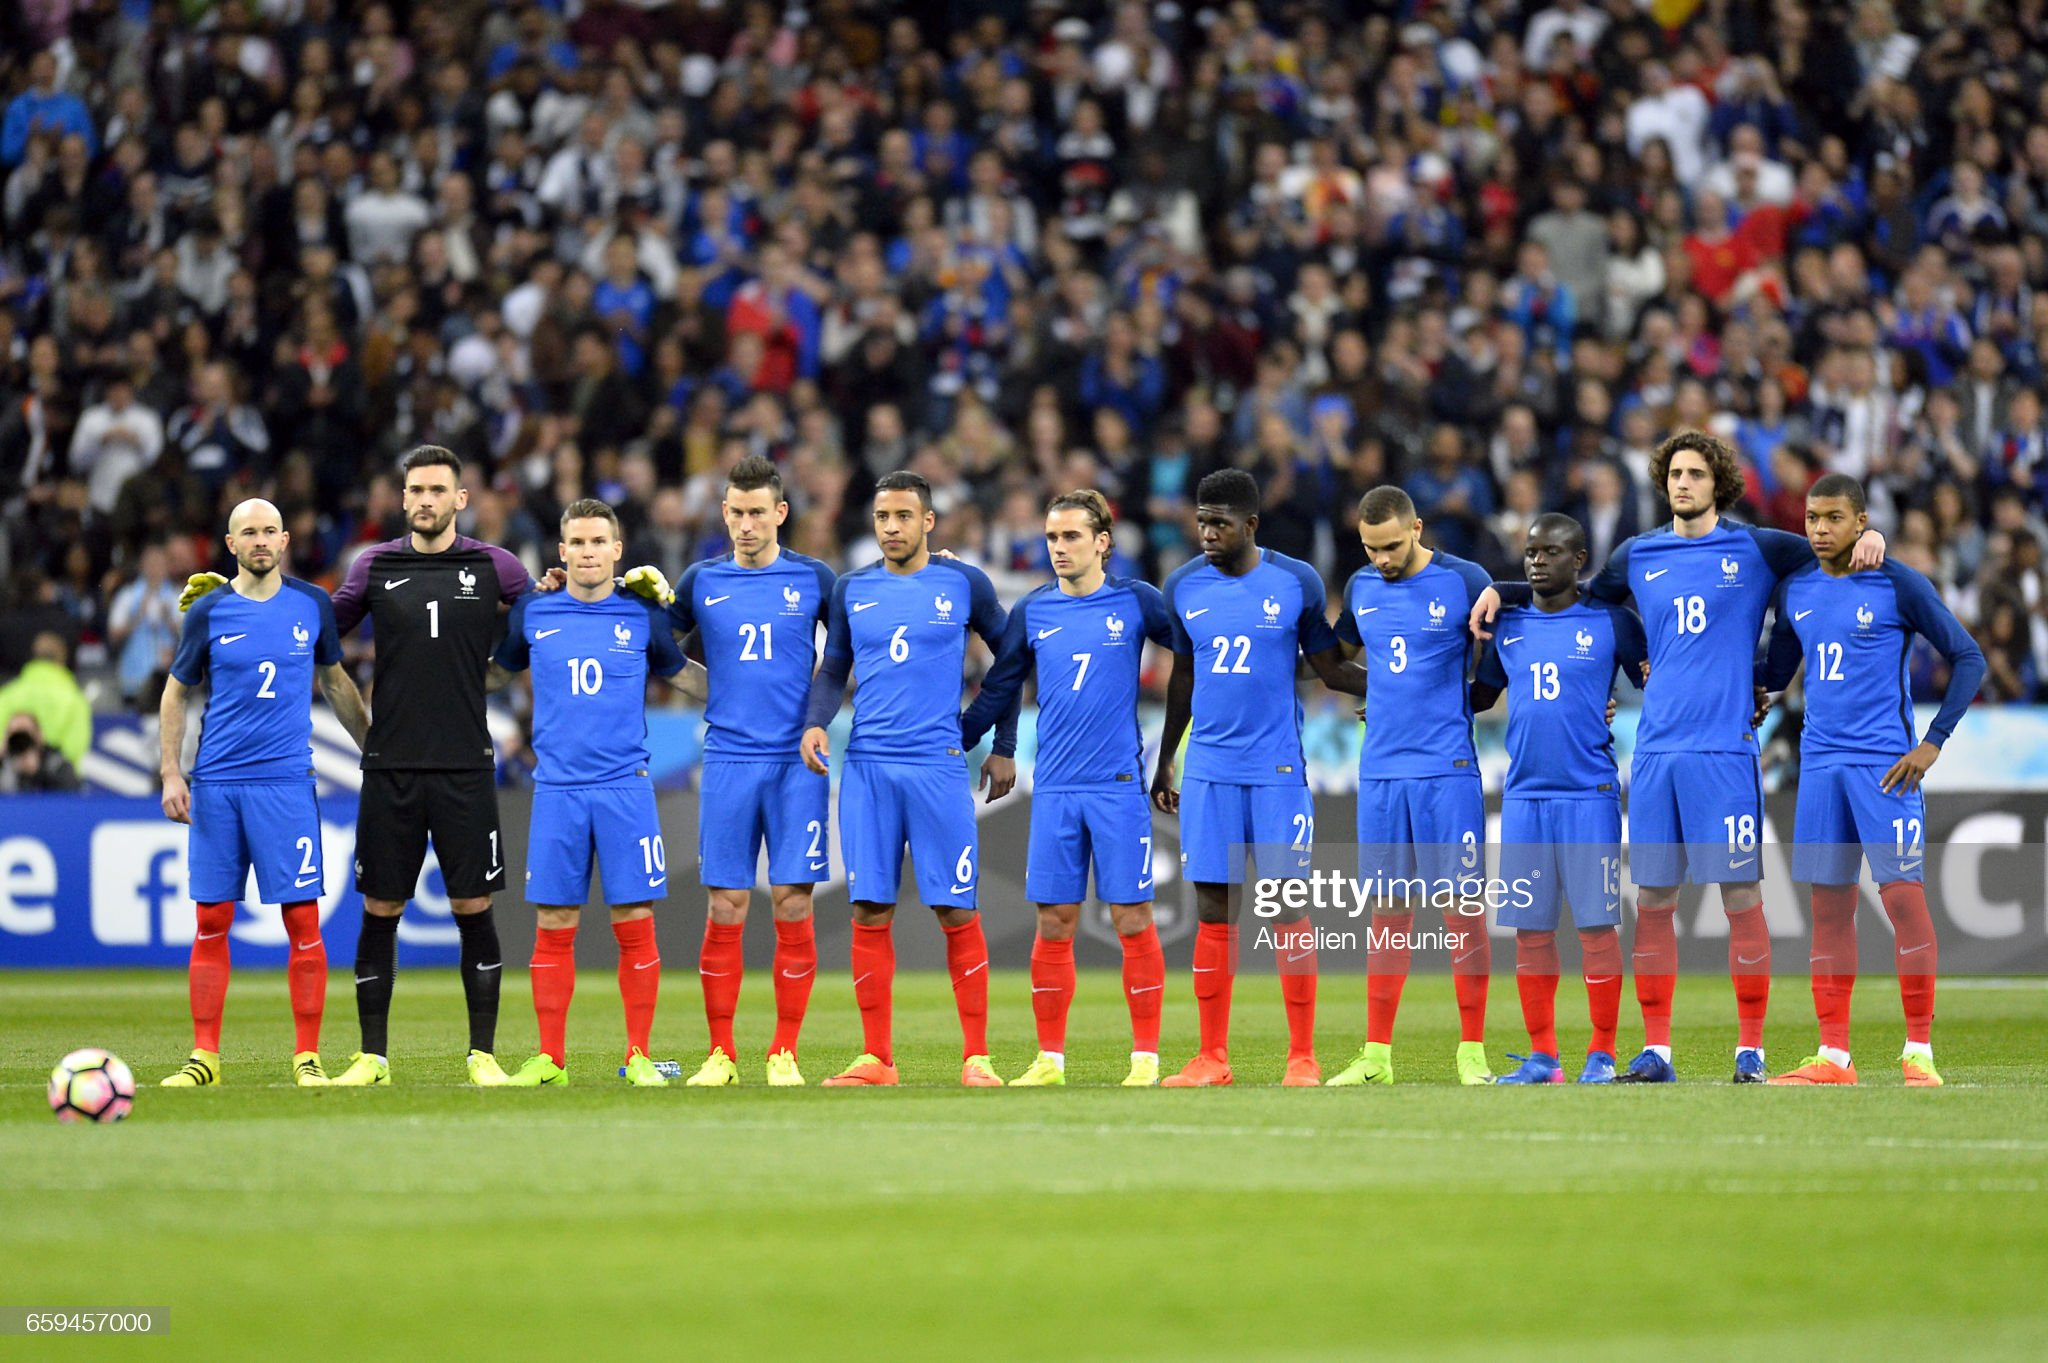 ¿Cuánto mide Christophe Jallet? - Real height Team-france-clap-for-one-minute-as-a-tribute-to-raymond-kopa-before-picture-id659457000?s=2048x2048